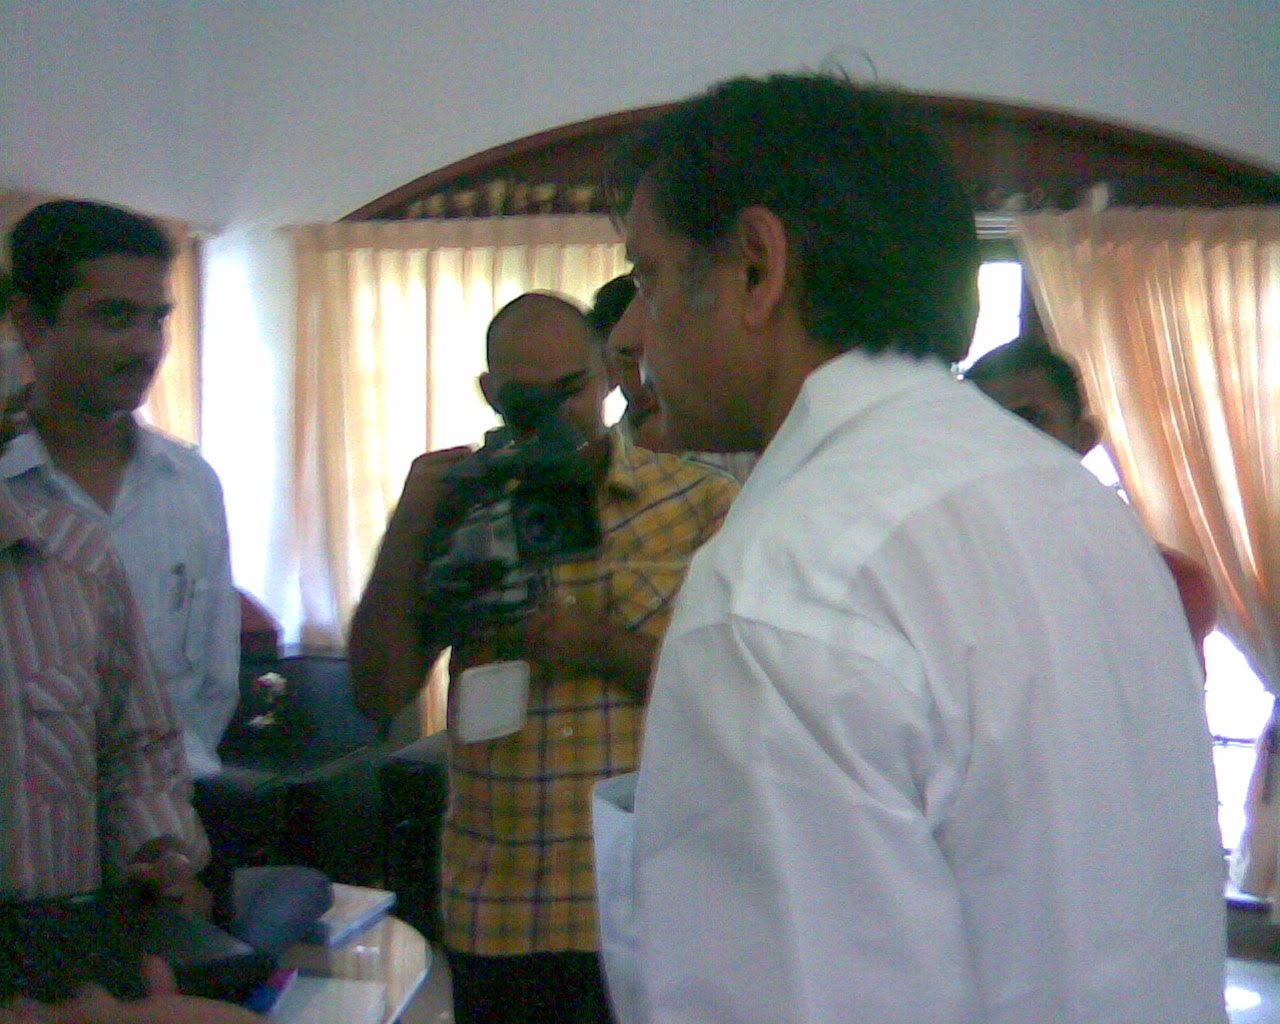 Kenney recording the interview of Trivandrum Bloggers with Dr. Tharoor.